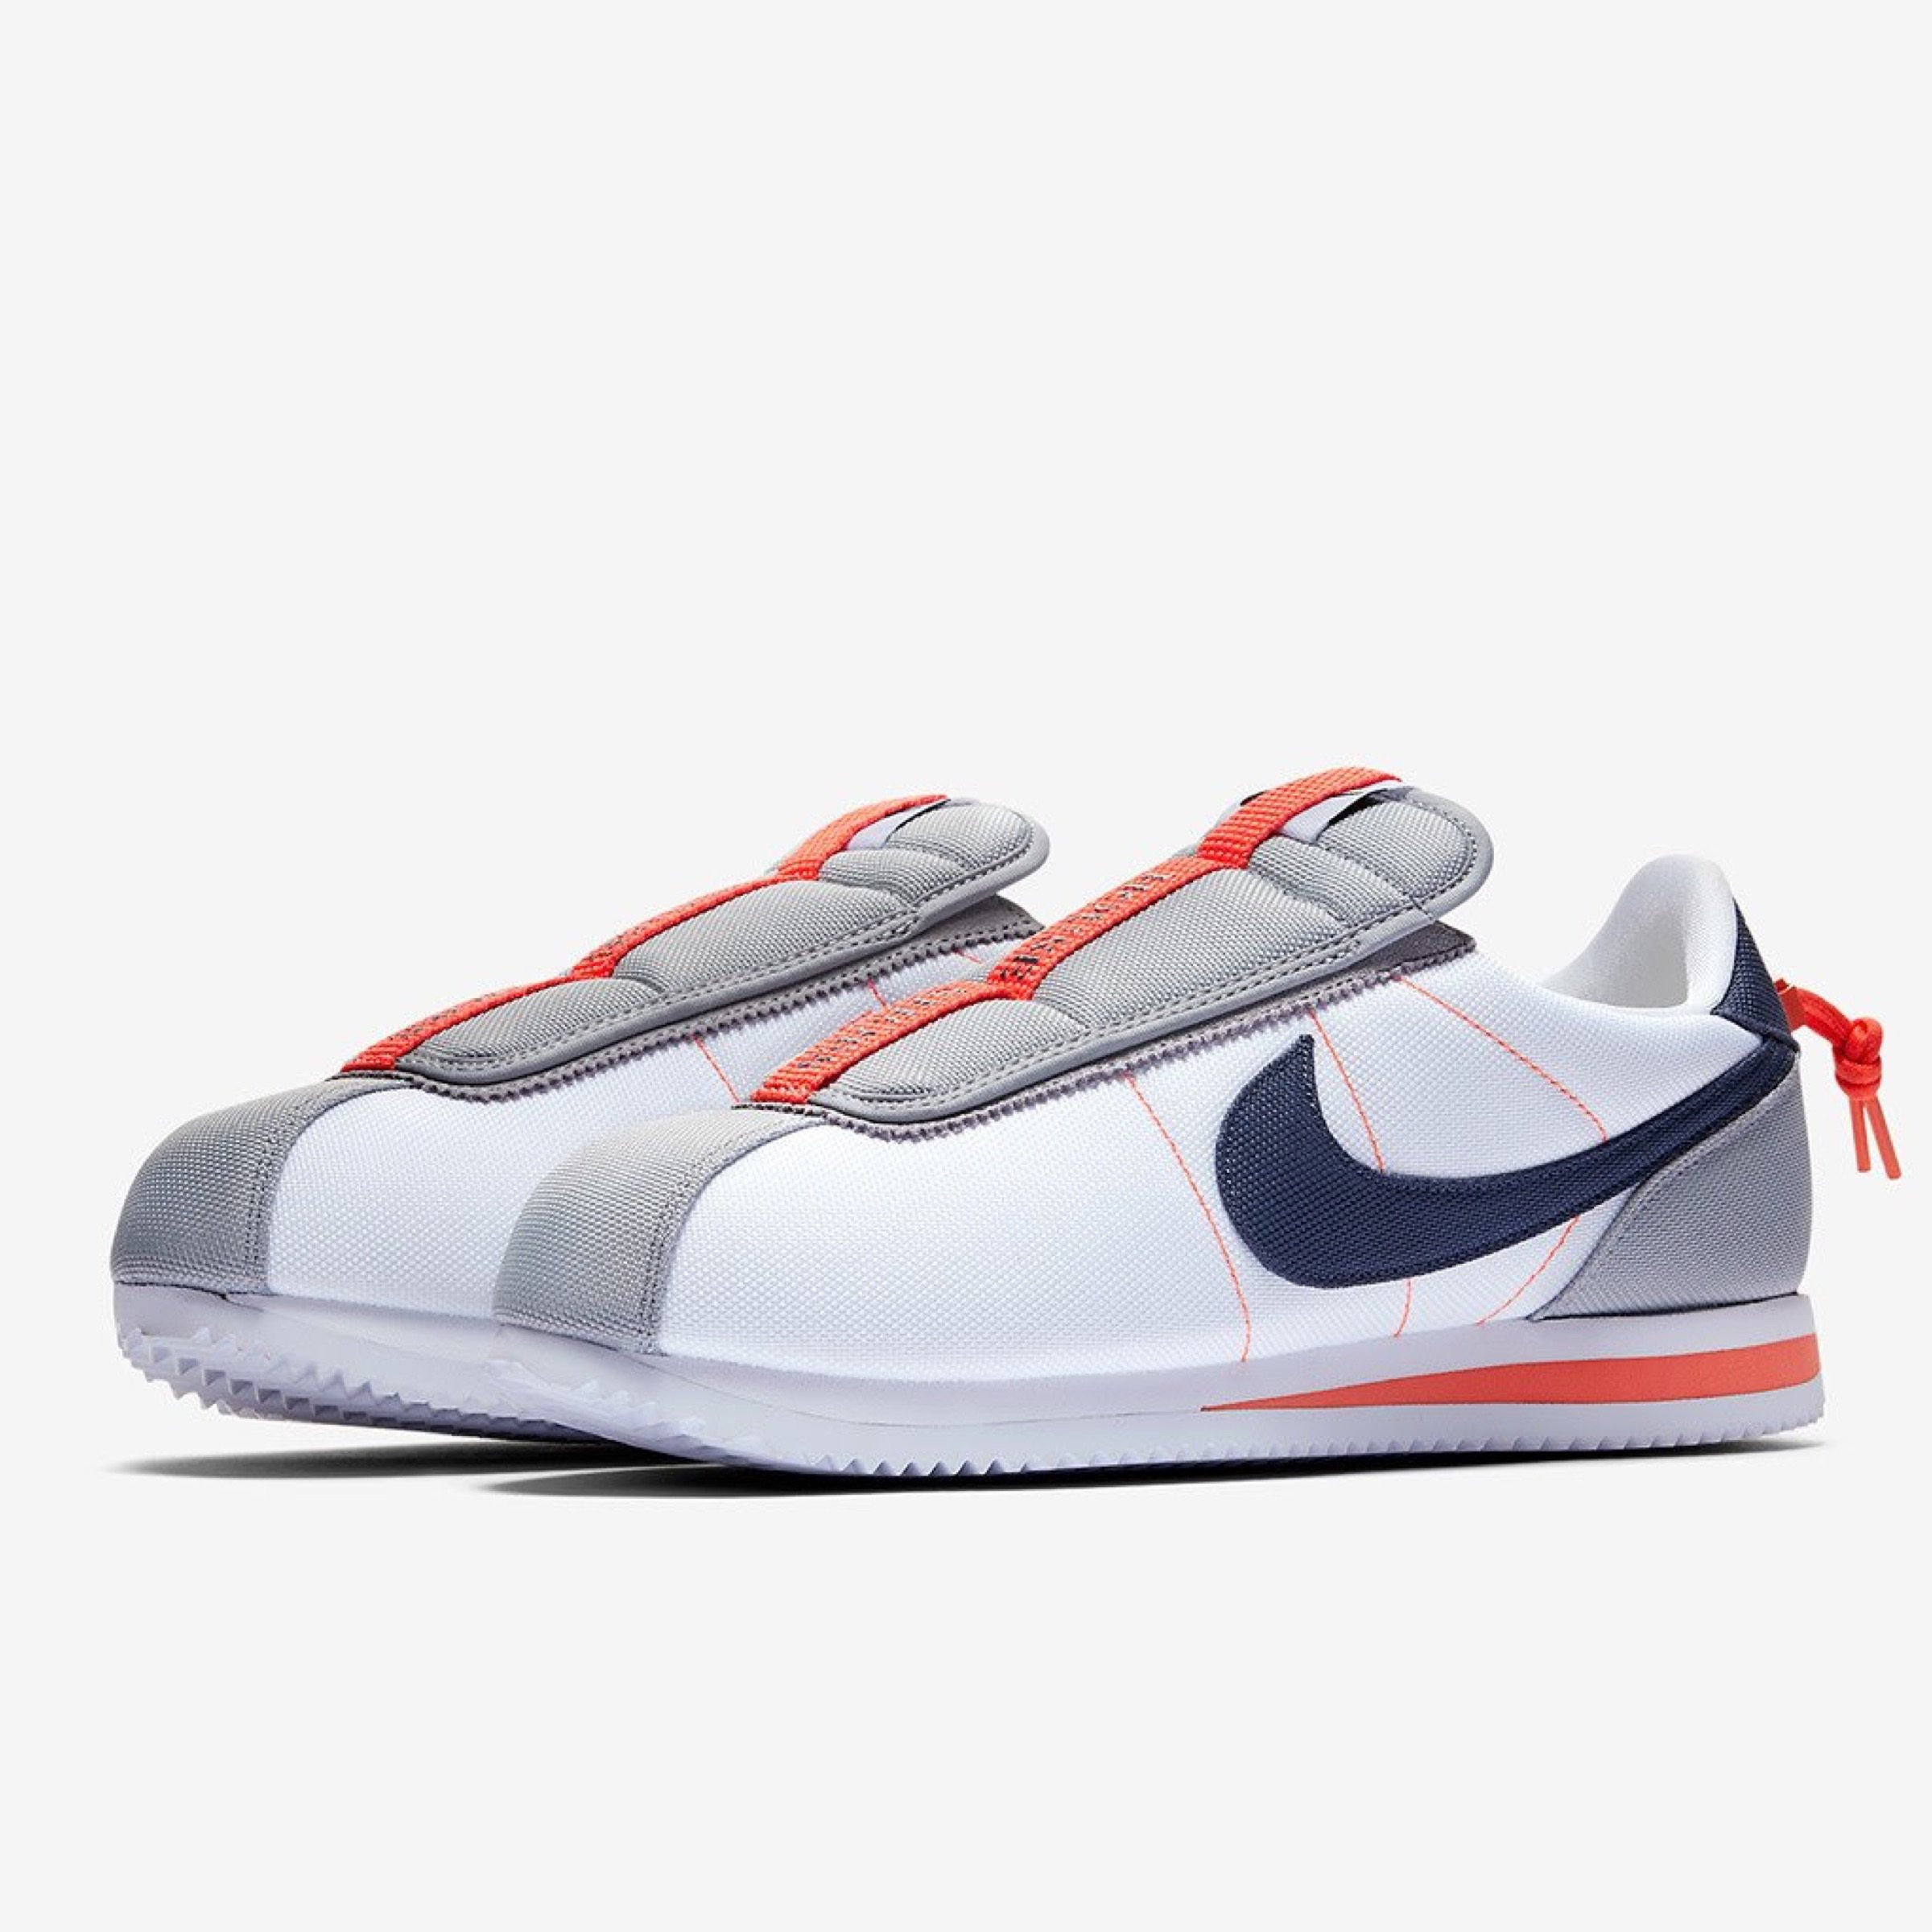 NIKE CORTEZ BASIC SLIP / KENDRICK LAMAR WHITE Running Unisex THUNDER BLUE-WOLF GREY-TURF ORANGE AV2950-100